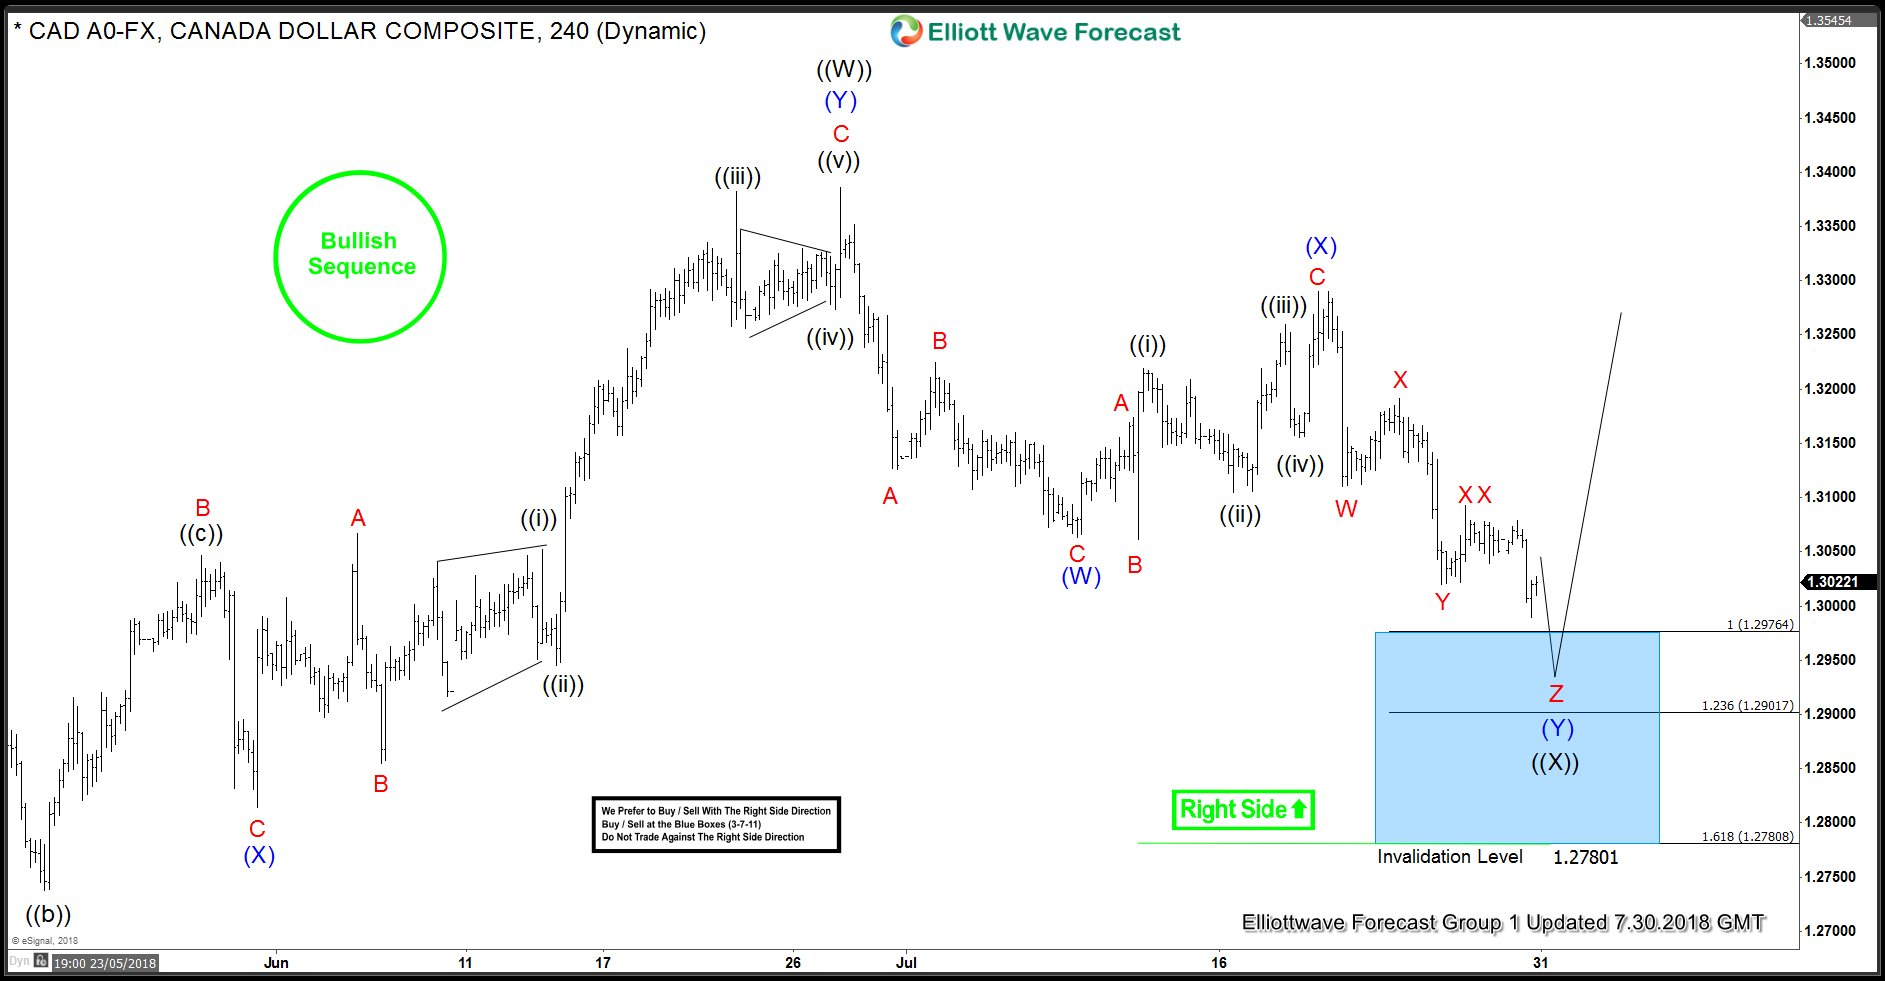 USDCAD Elliott Wave Analysis - 240 minute chart